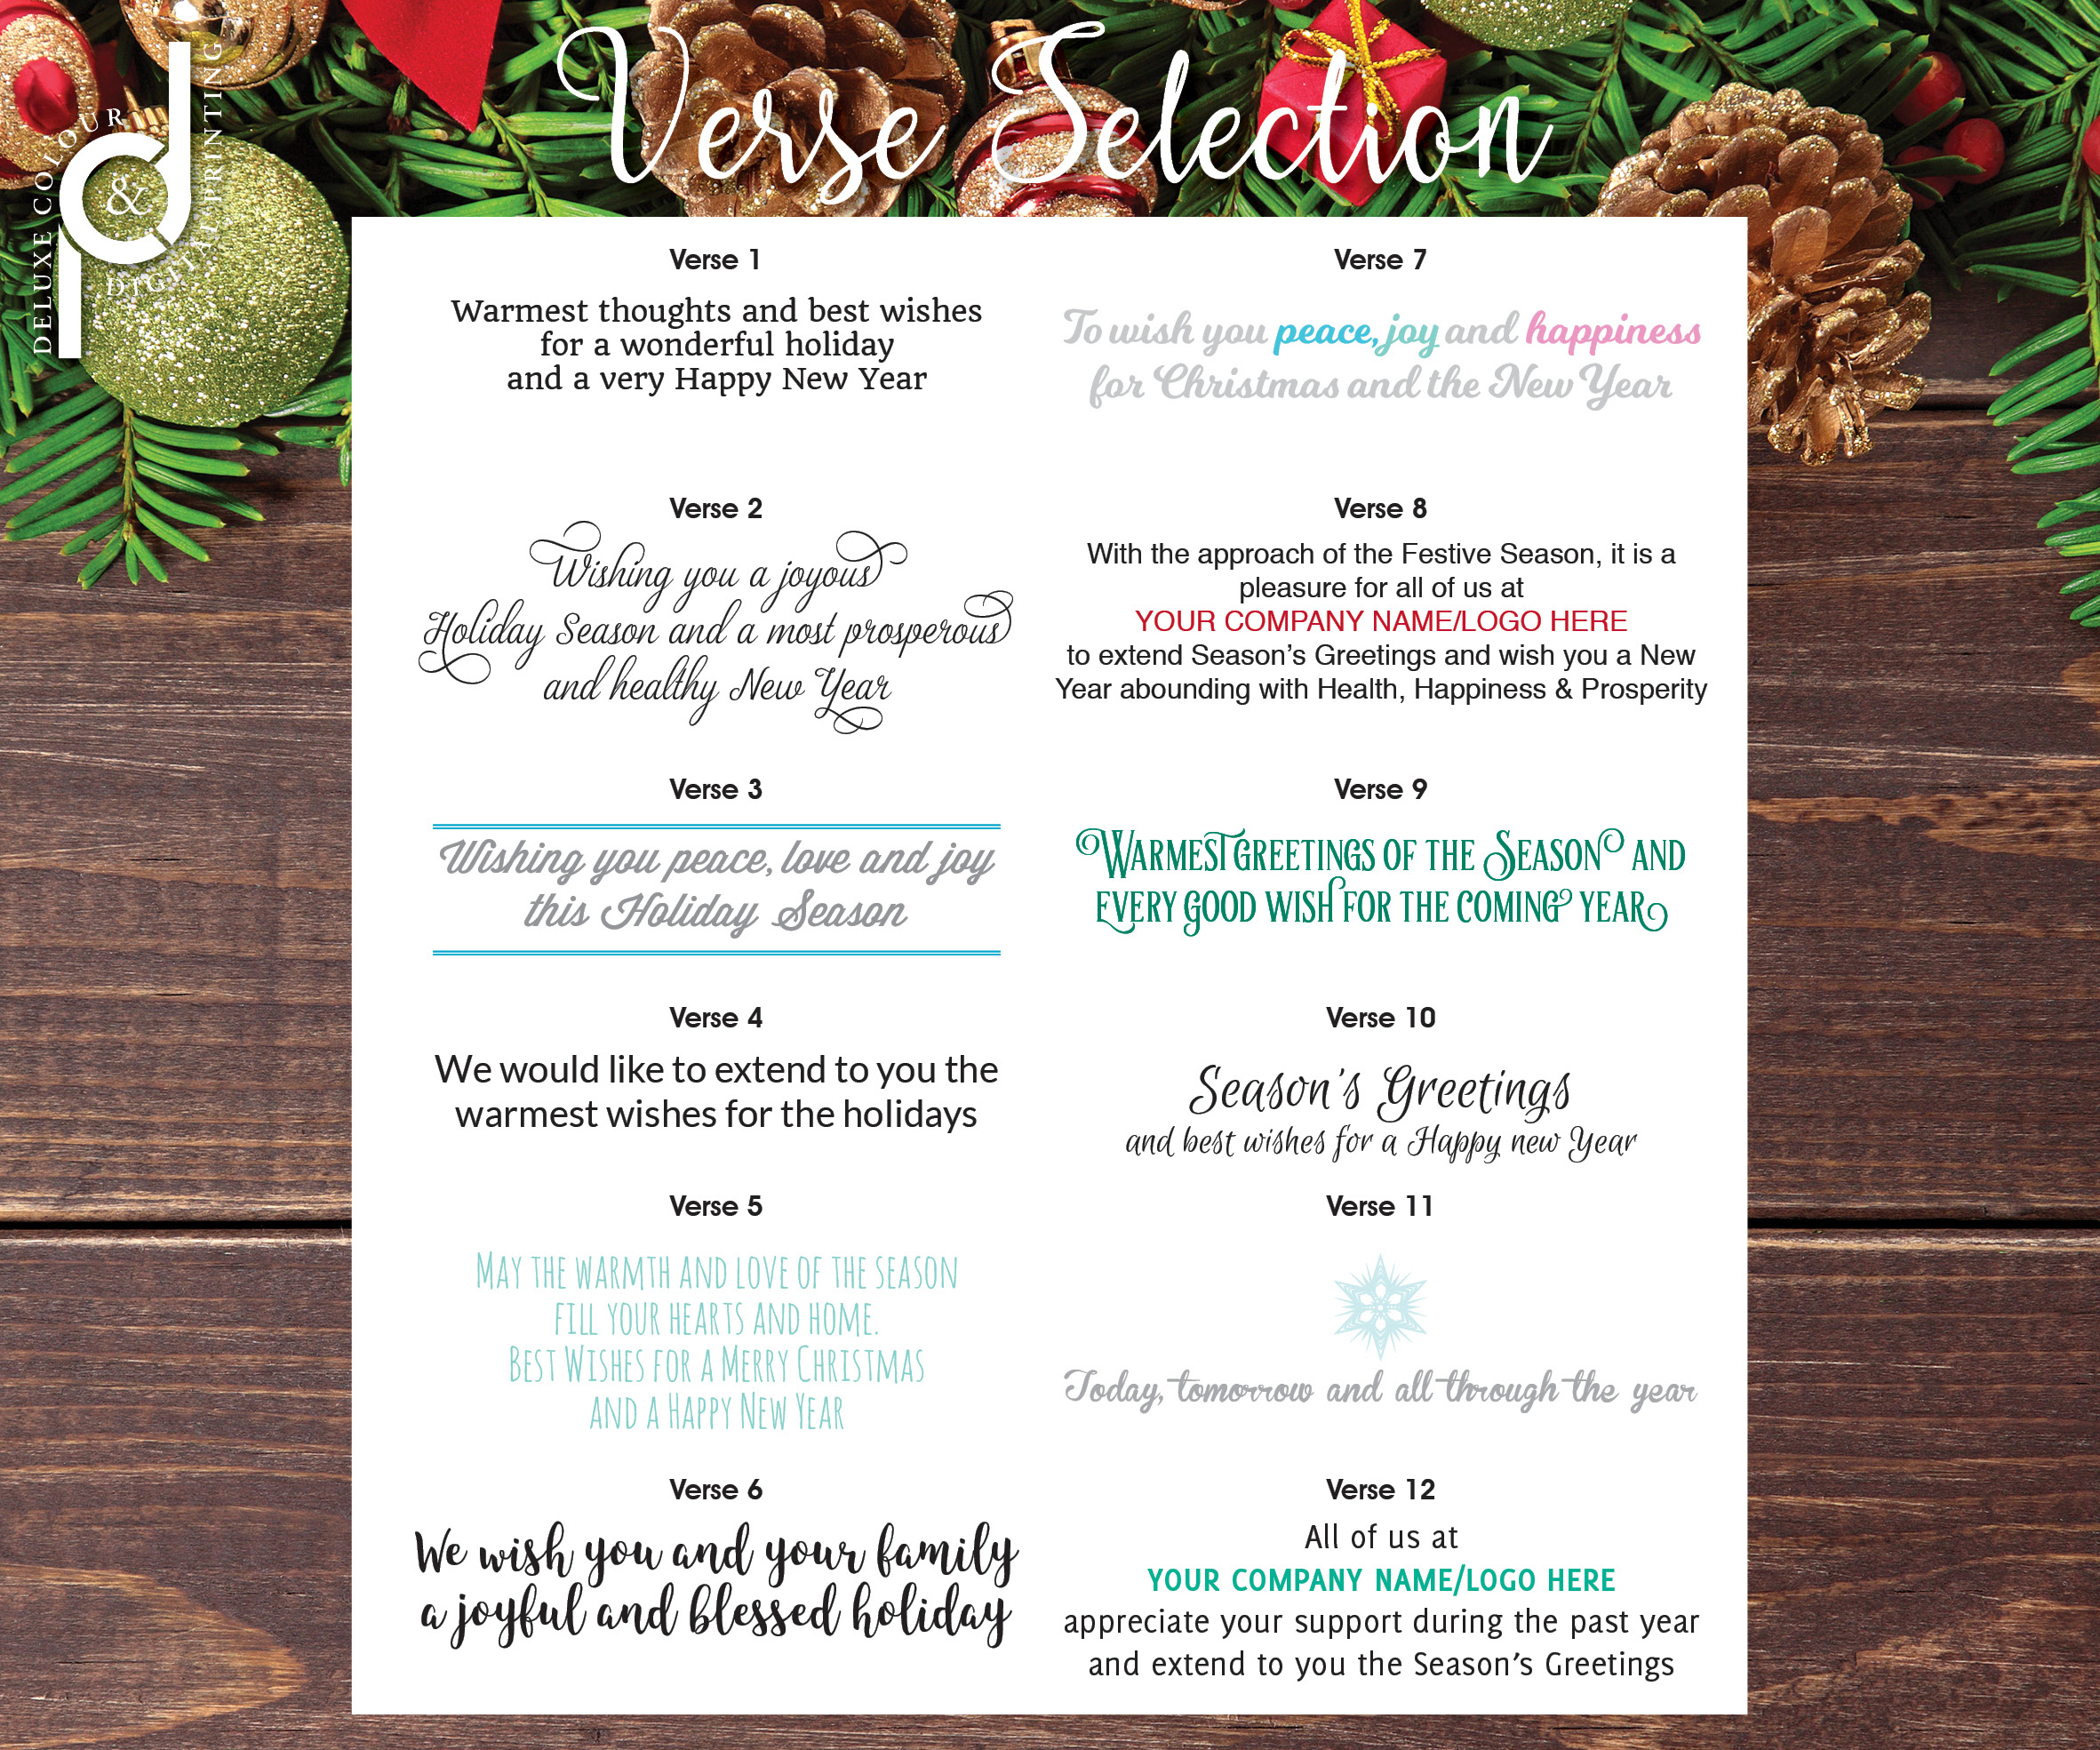 feature_christmascardsverses2016